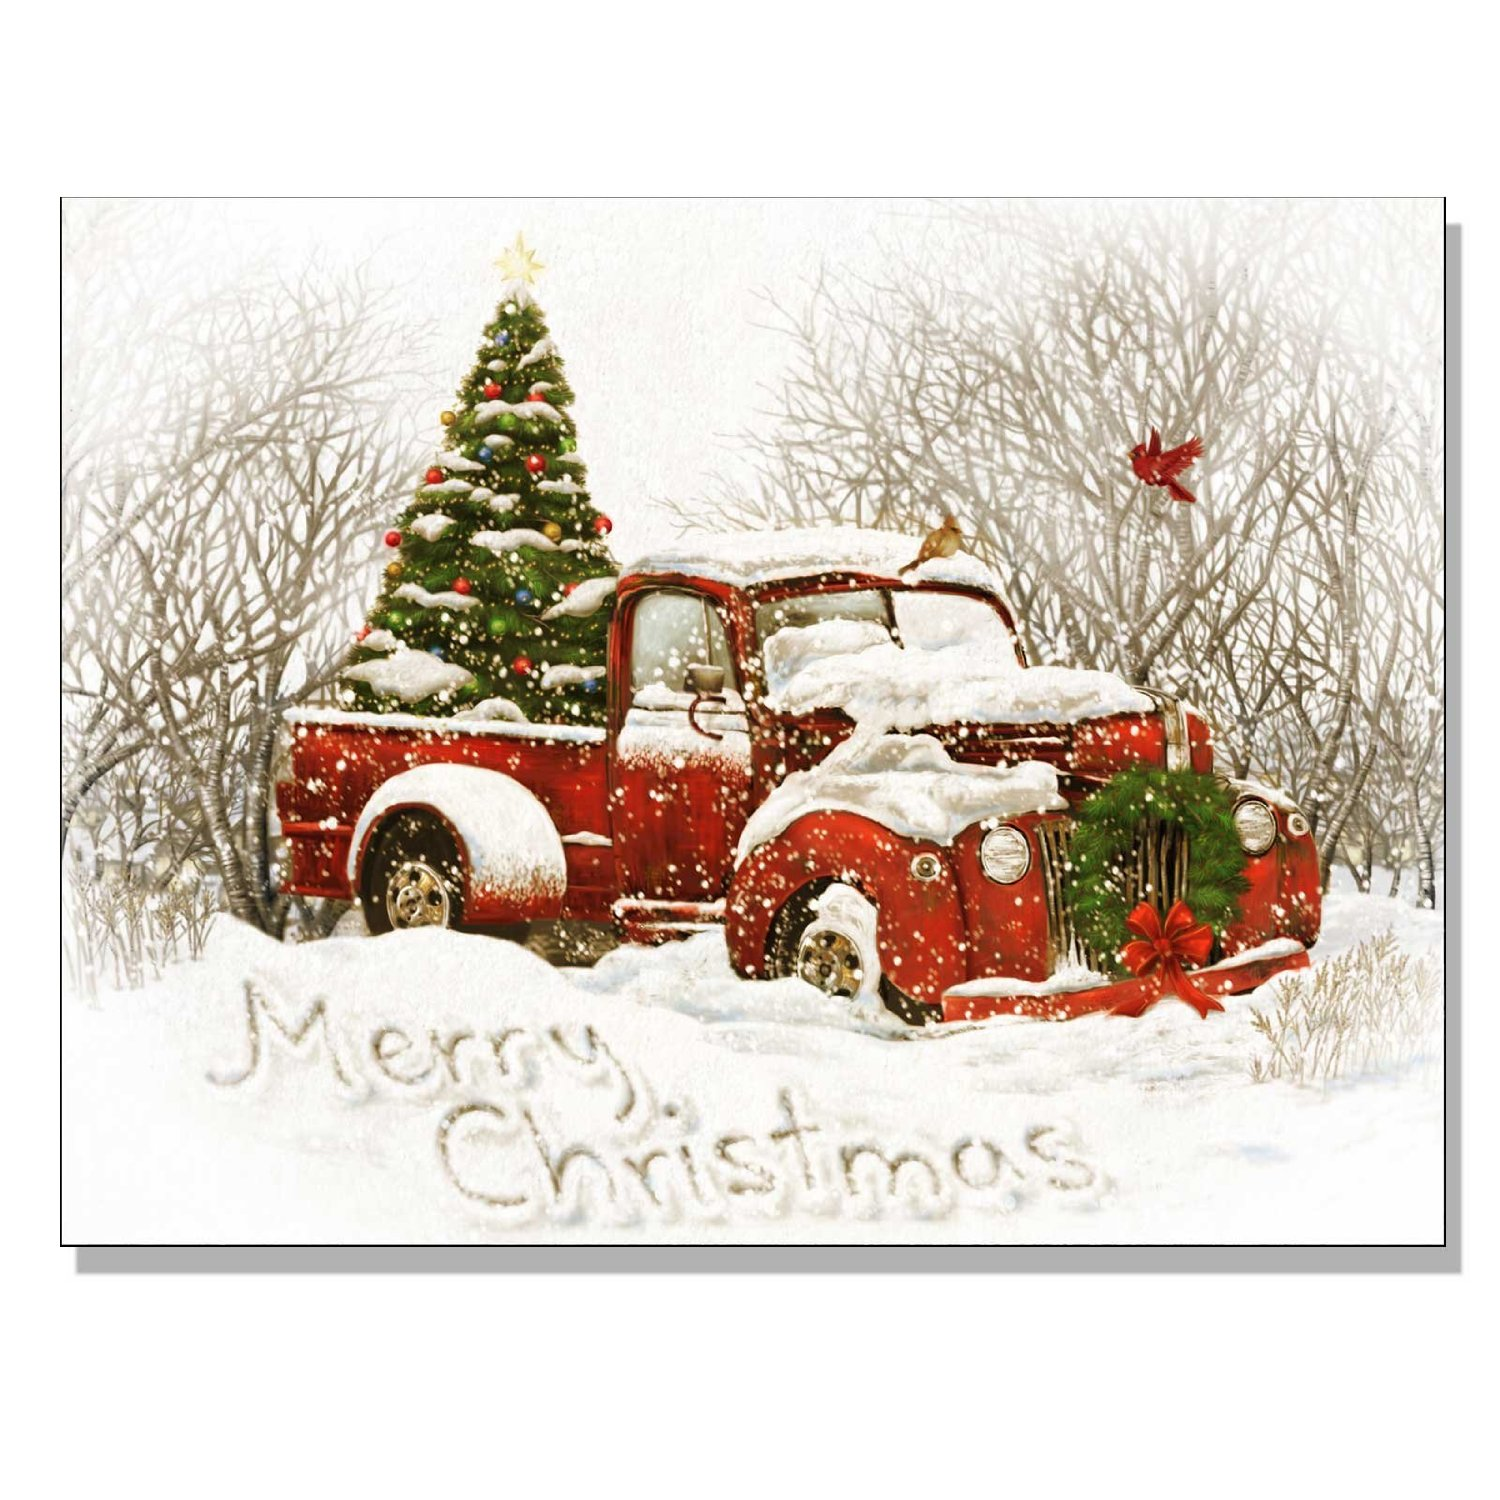 light up christmas canvas decor of an old red pick up truck with a christmas tree - Red Truck Christmas Decor